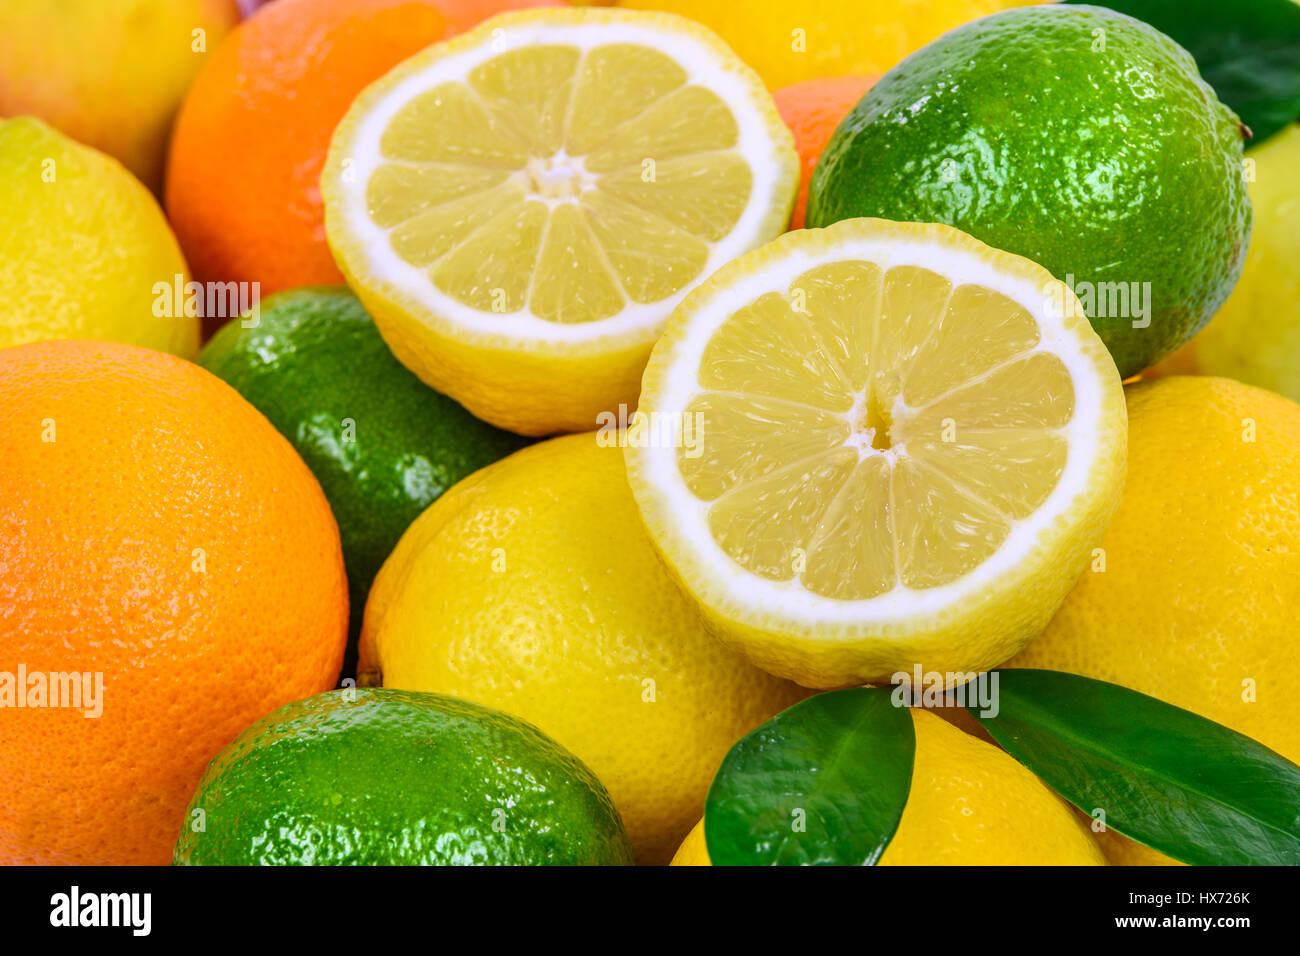 Beautiful background with various fresh citrus fruits. - Stock Image